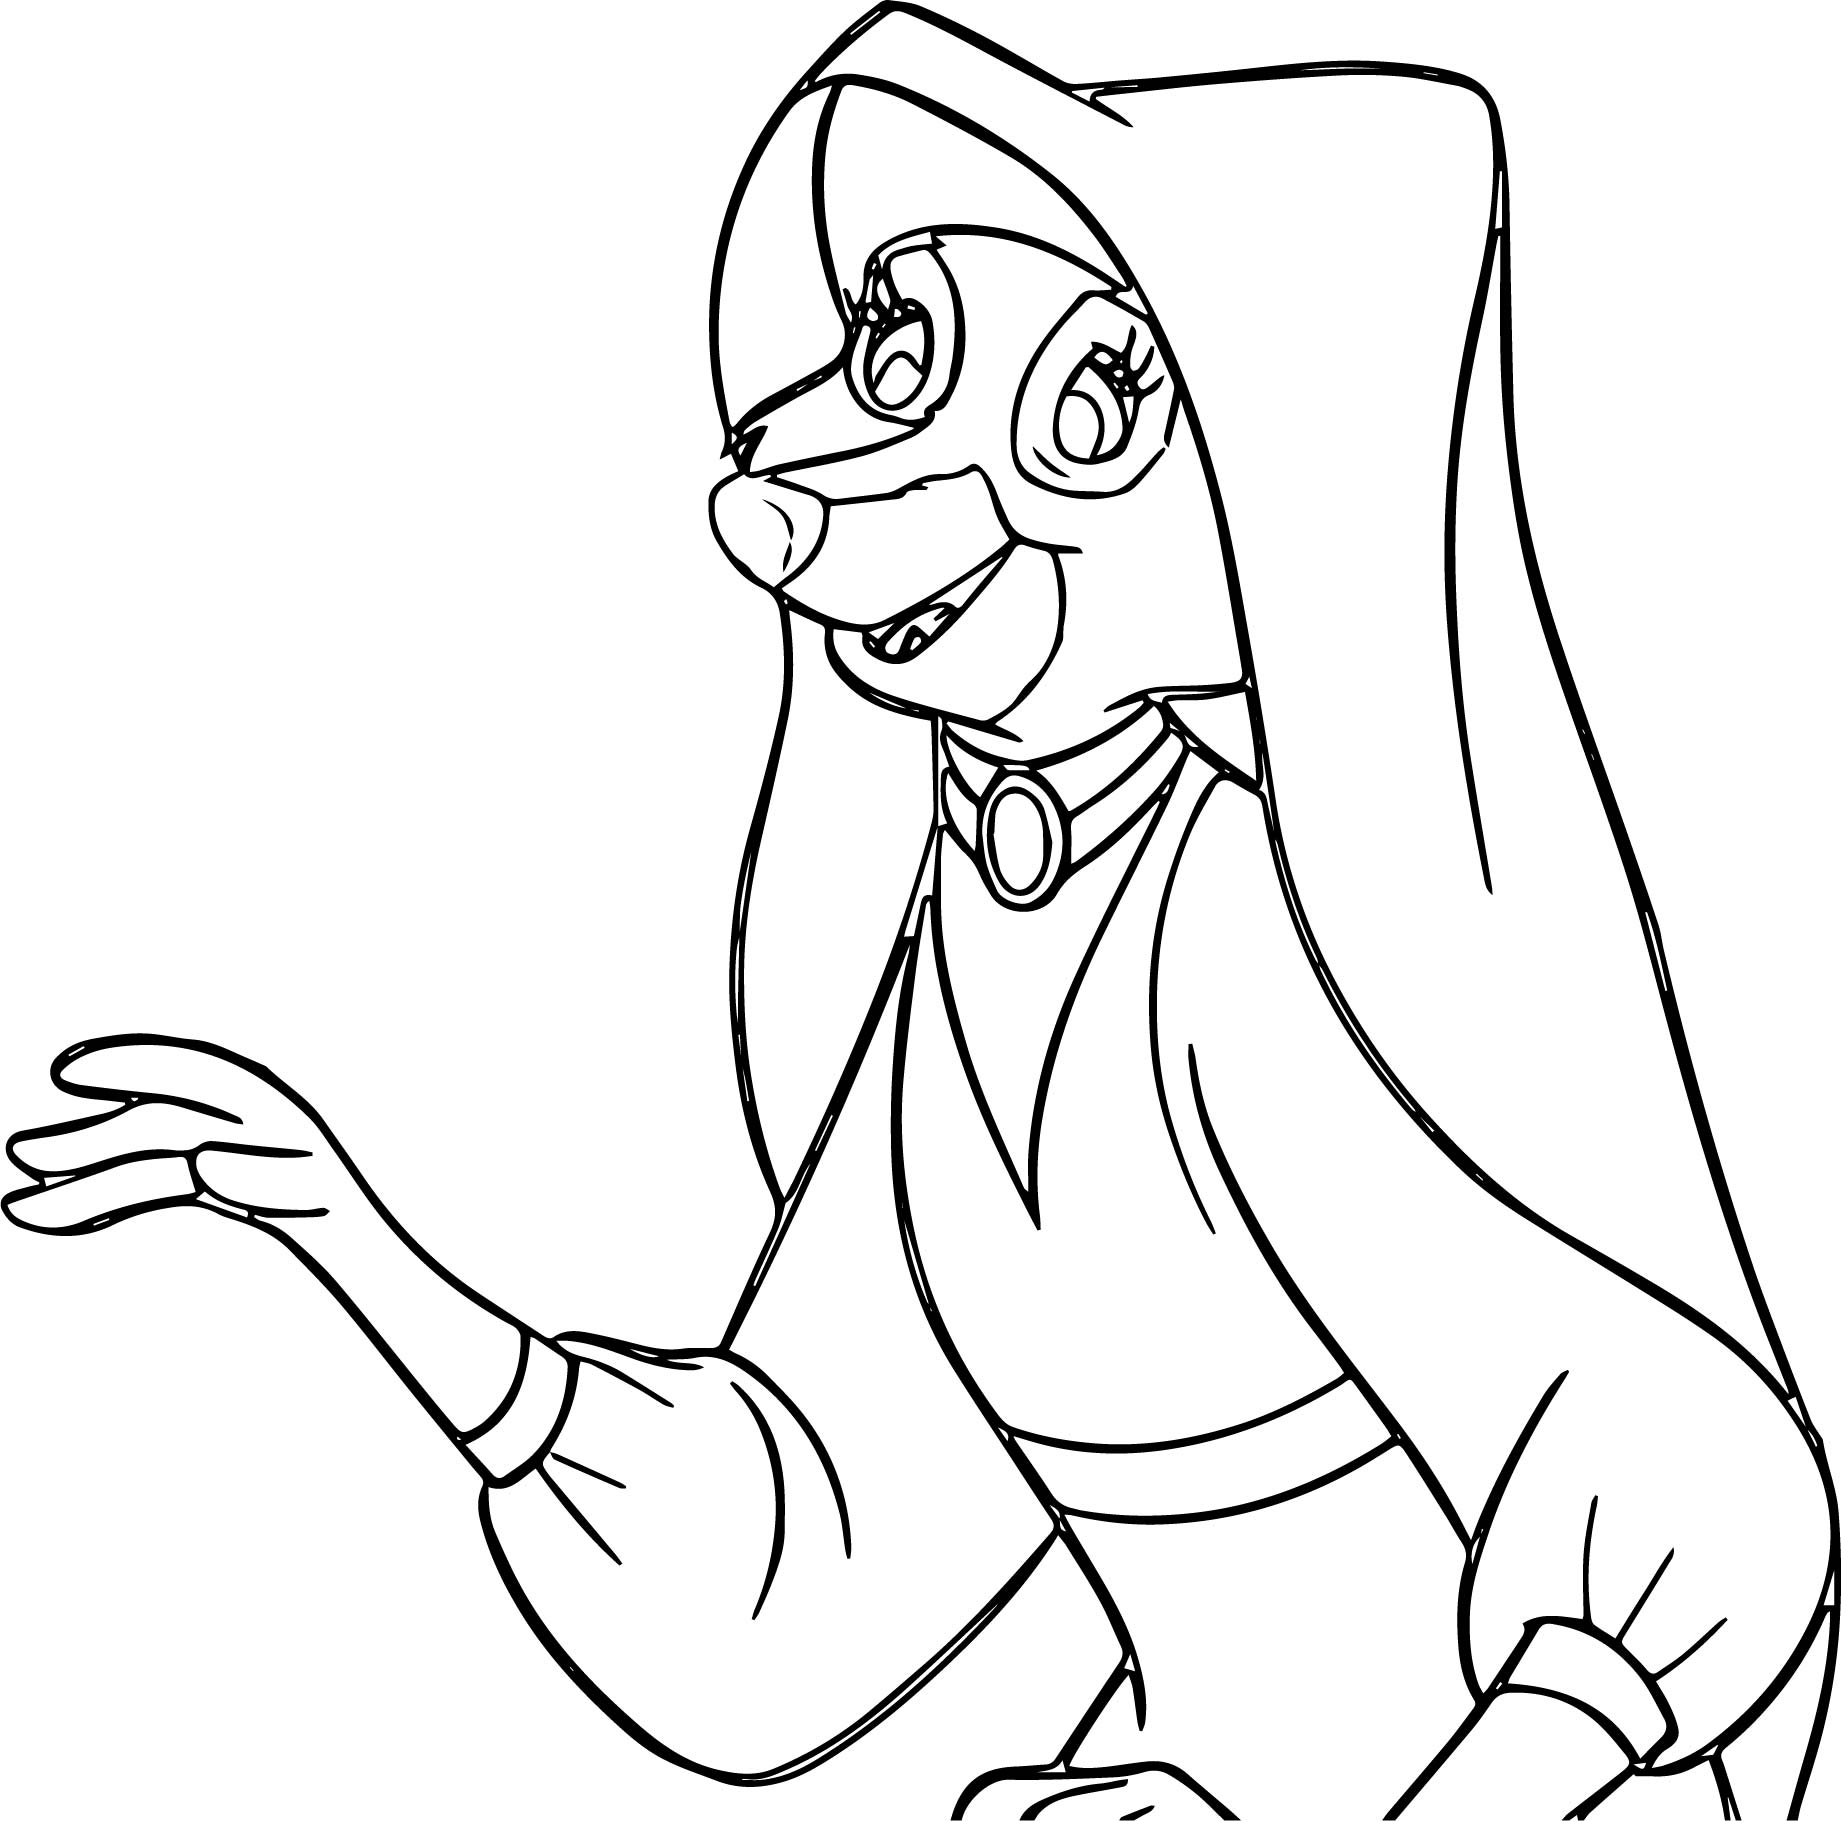 Maid Marian Talking Coloring Page